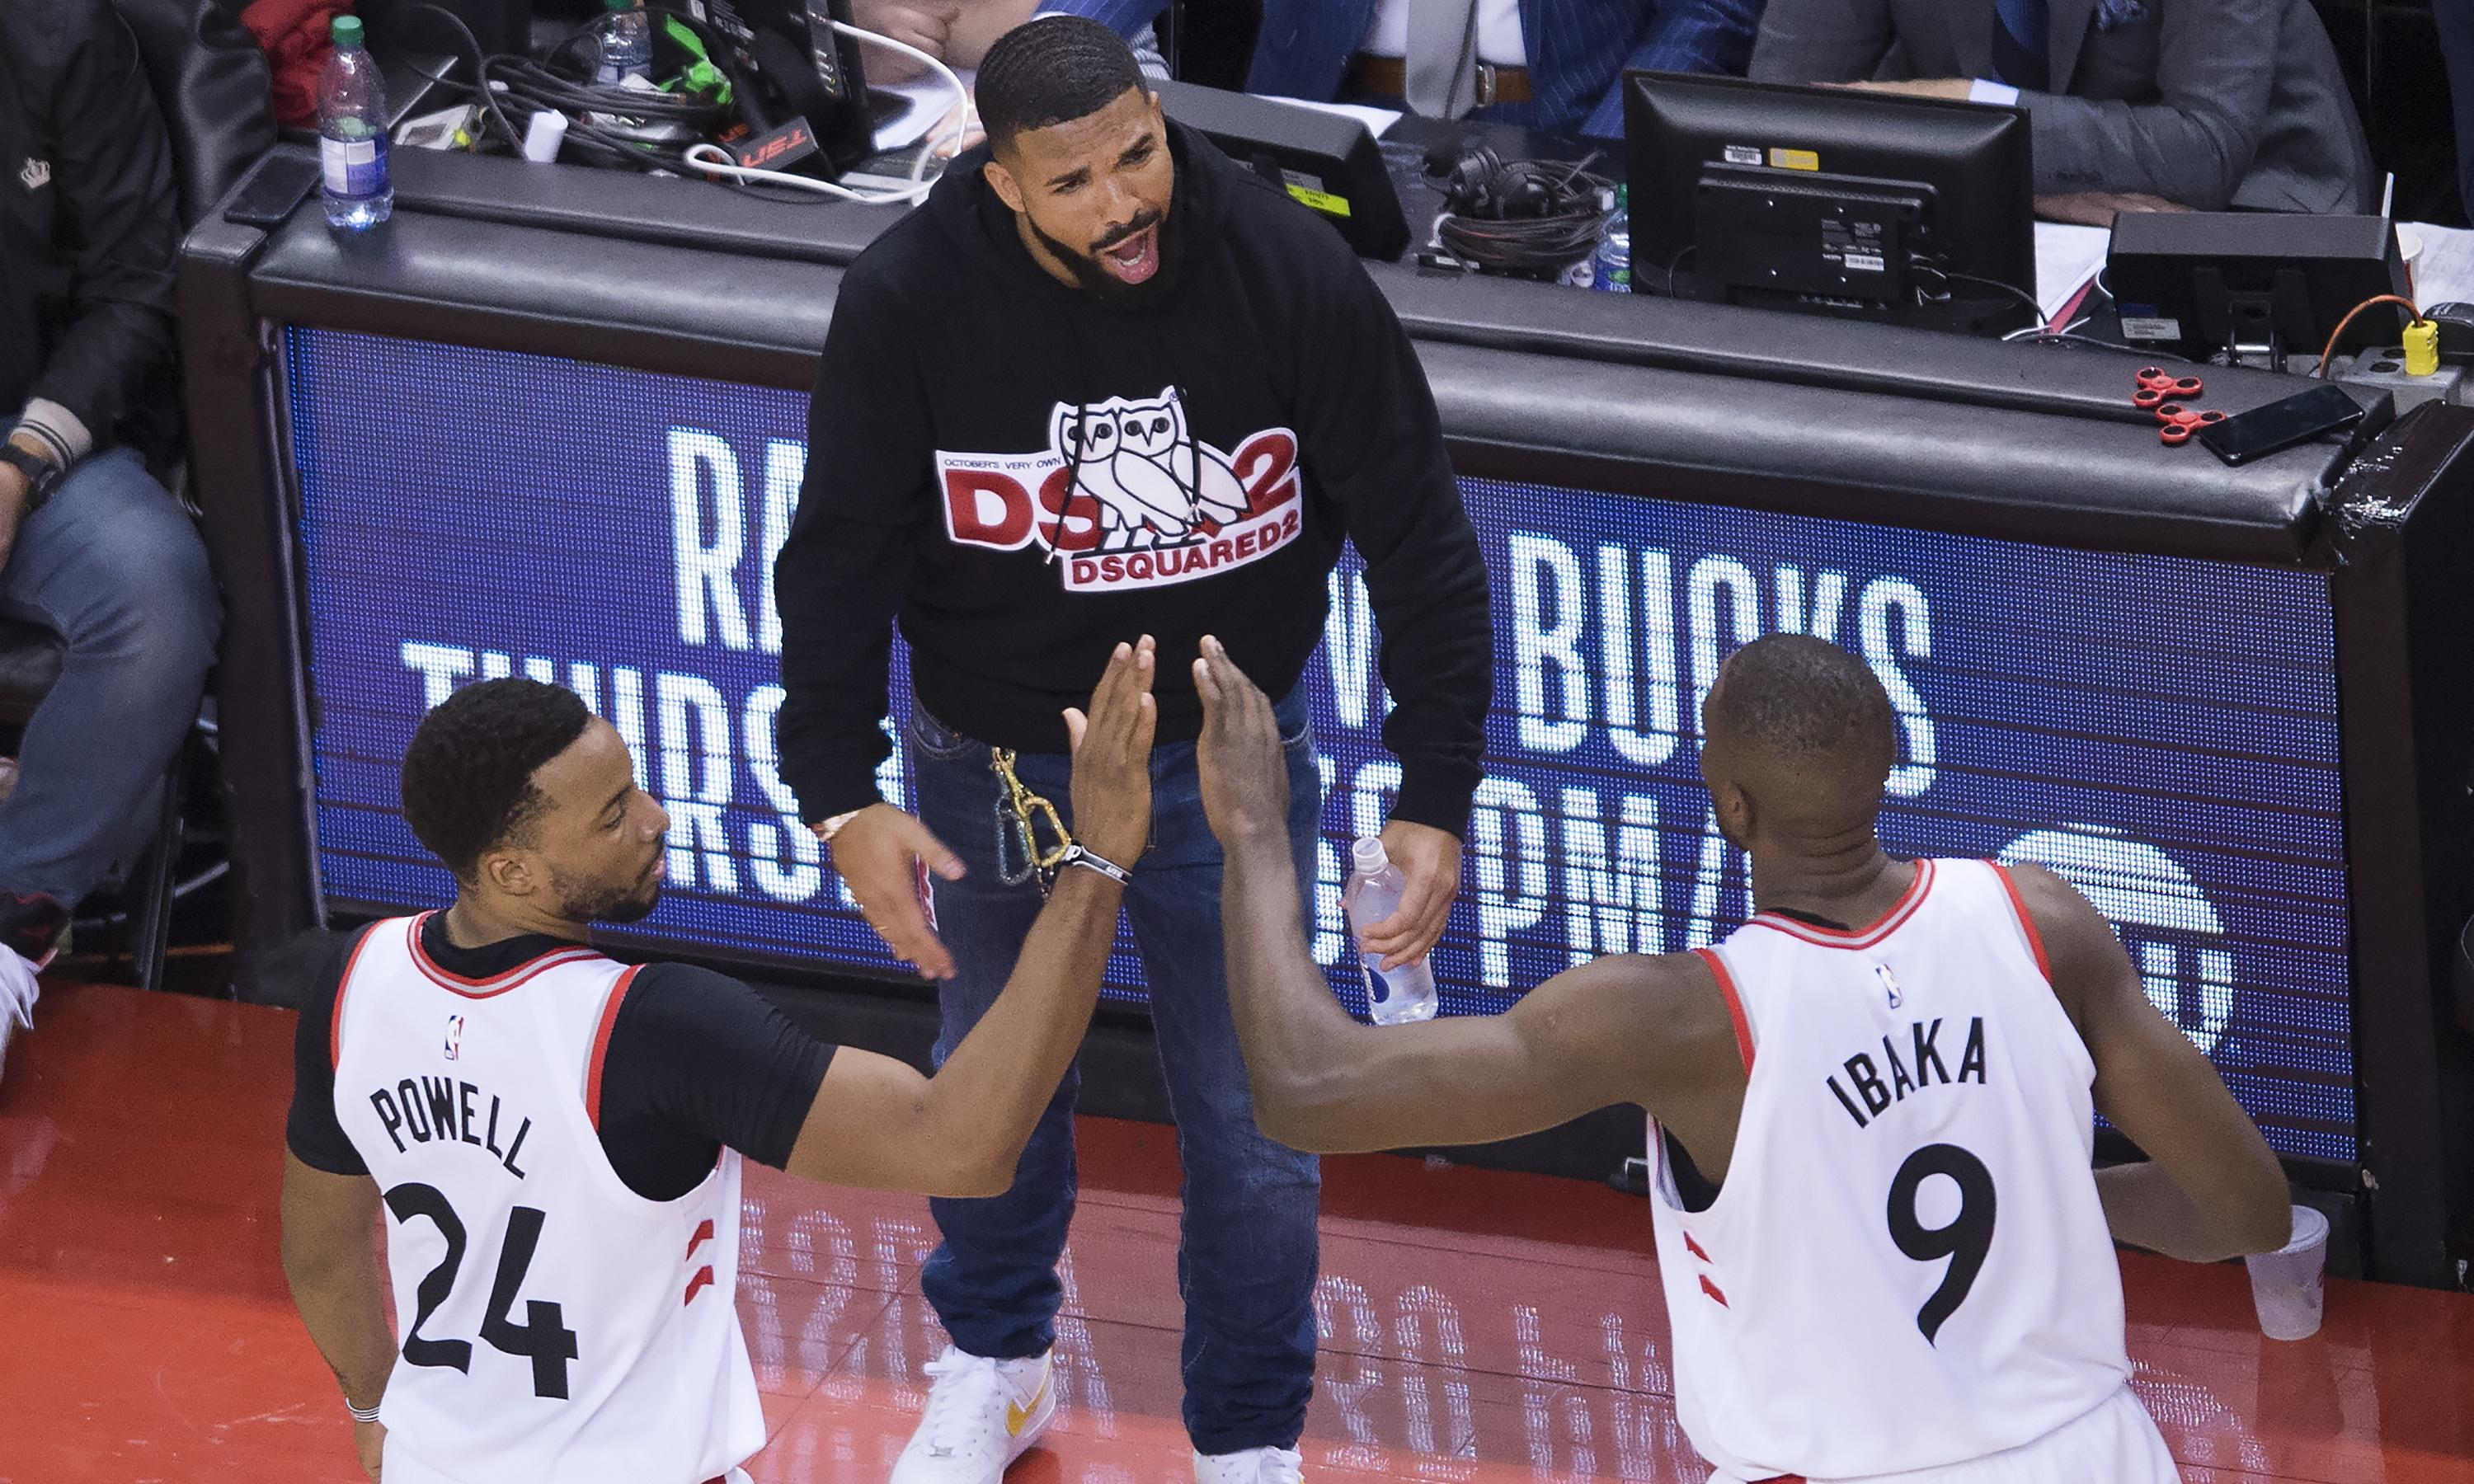 Drake v Bucks feud grows as Milwaukee turns its ire on rapper's courtside antics